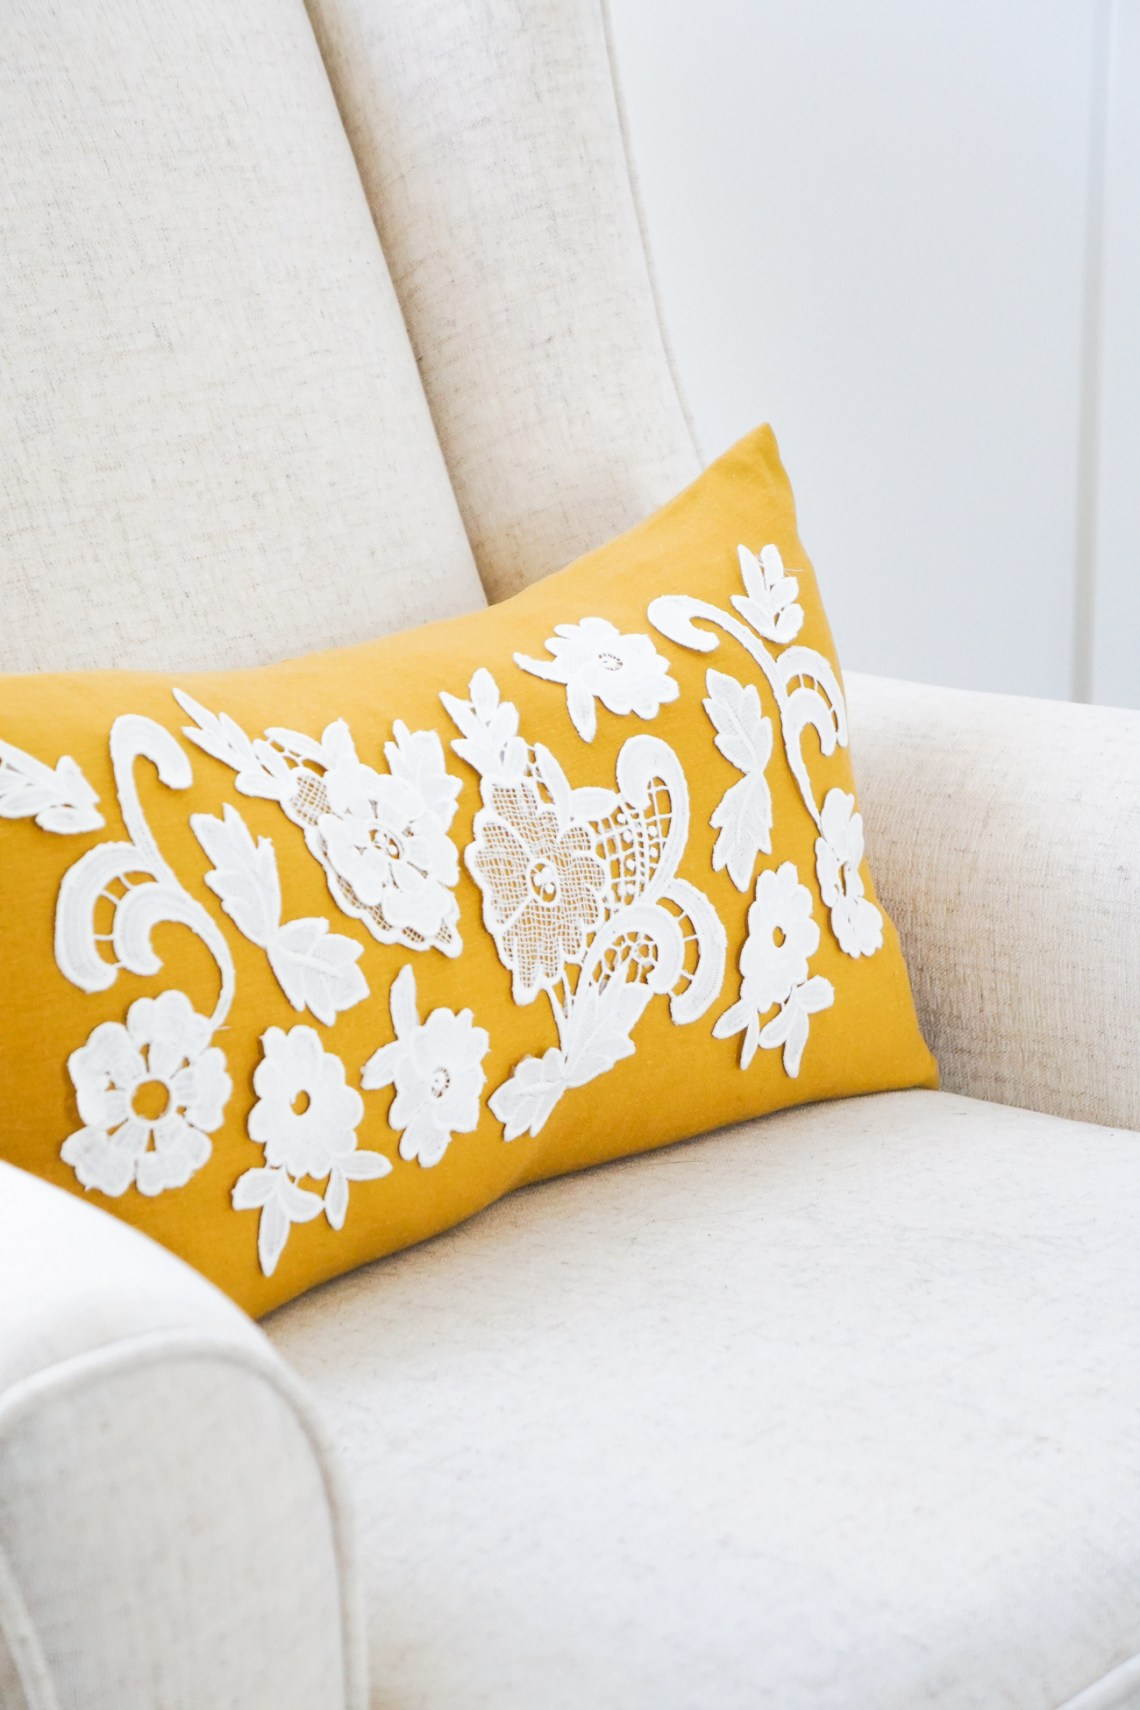 DIY a beautiful lace applique pillow for your home or nursery with bridal lace. Click for all the details!